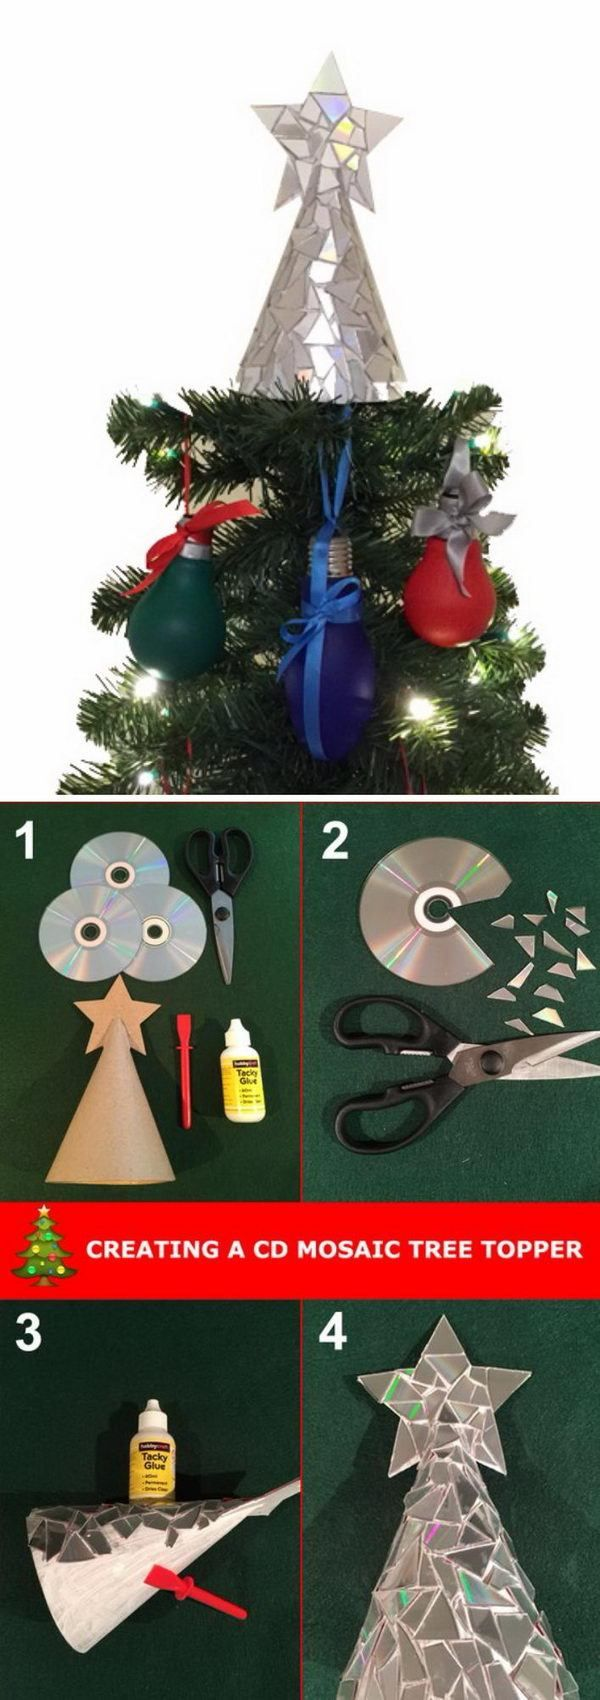 Awesome Diy Christmas Tree Topper Ideas Tutorials Check More At Https Wikilate Diy Christmas Tree Topper Diy Christmas Angel Tree Topper Diy Christmas Tree